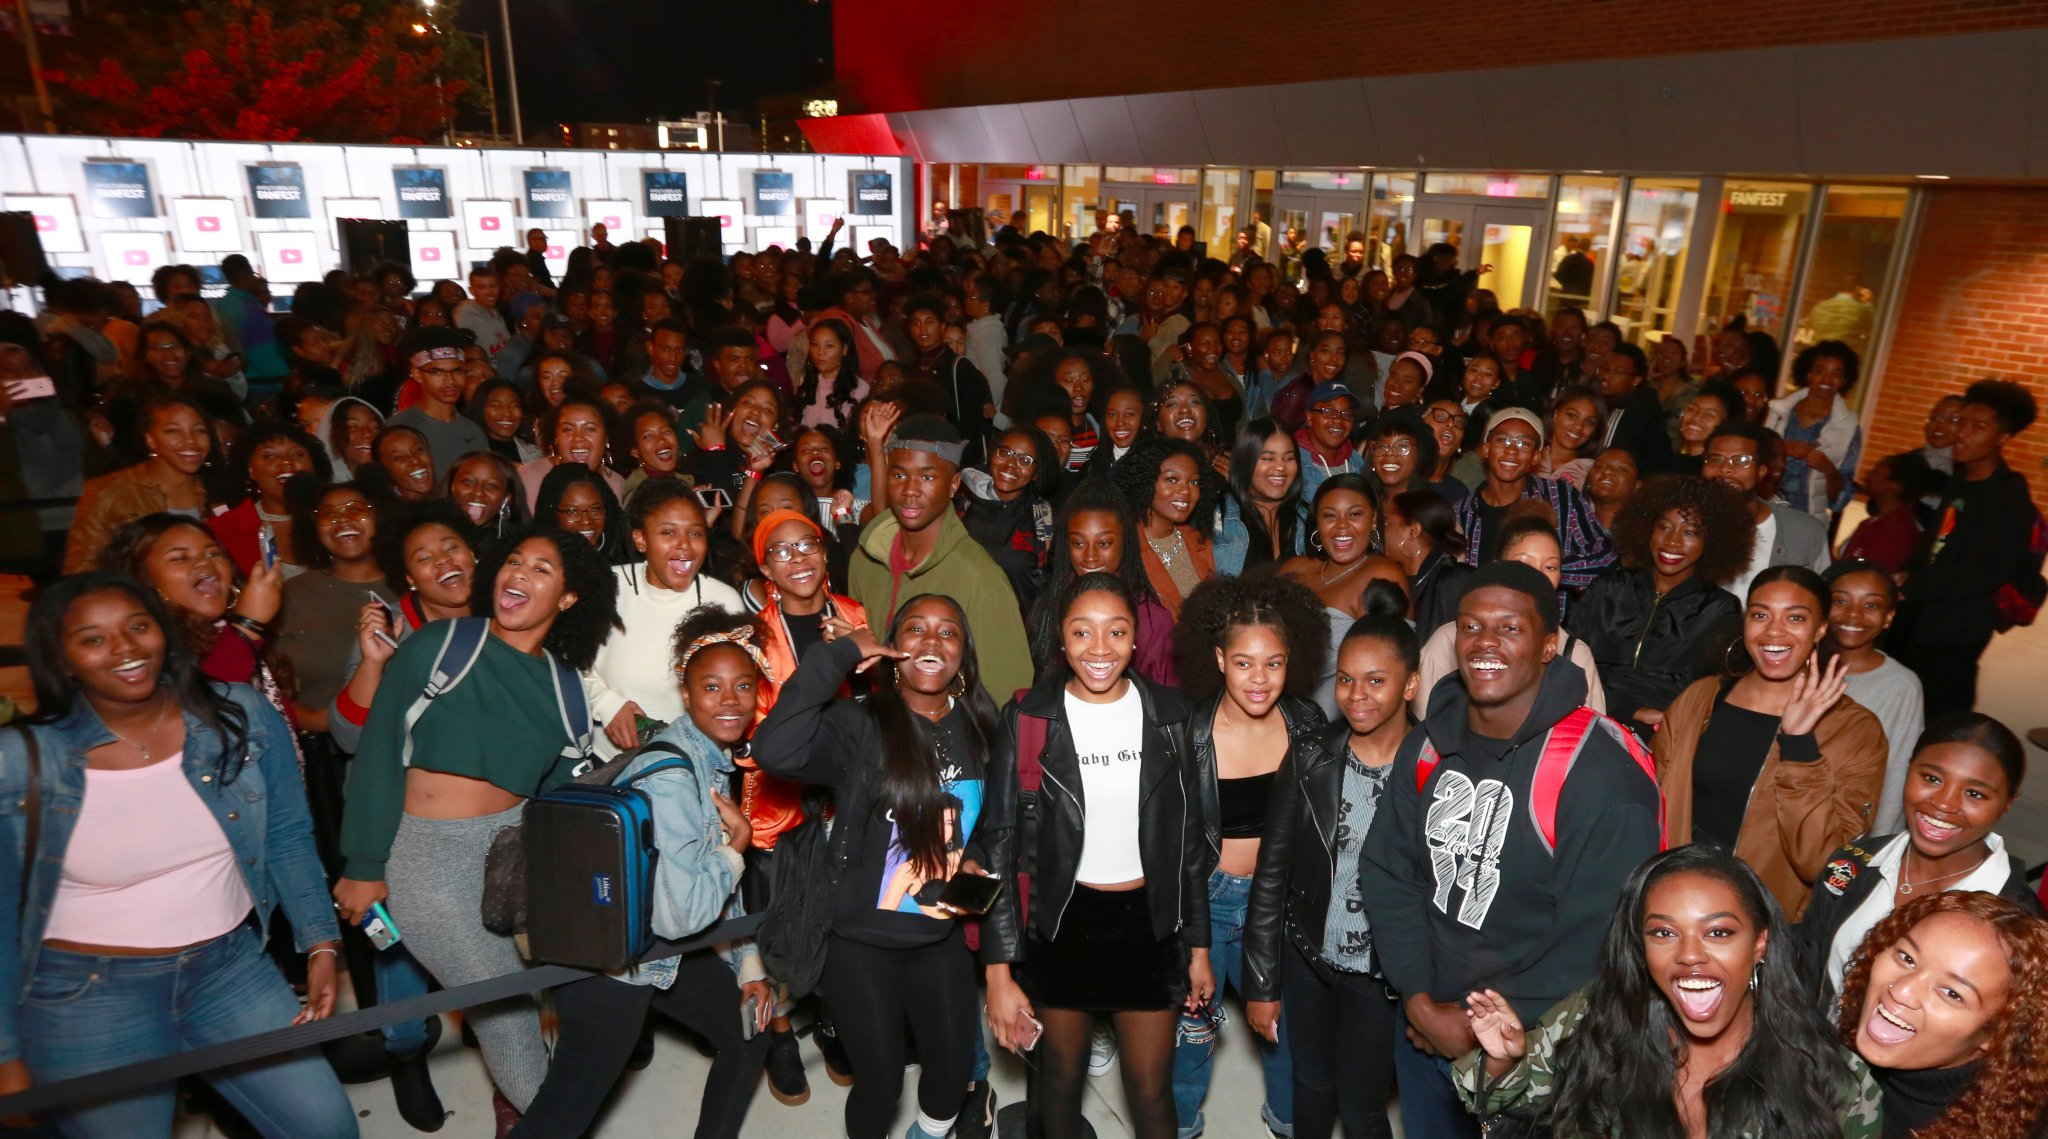 It's about to go down!  Check out #YouTubeBlack FanFest �� LIVE by clicking ➡️ https://t.co/78OaPZT5Ff #HowardUNow https://t.co/G2svwjCaJm